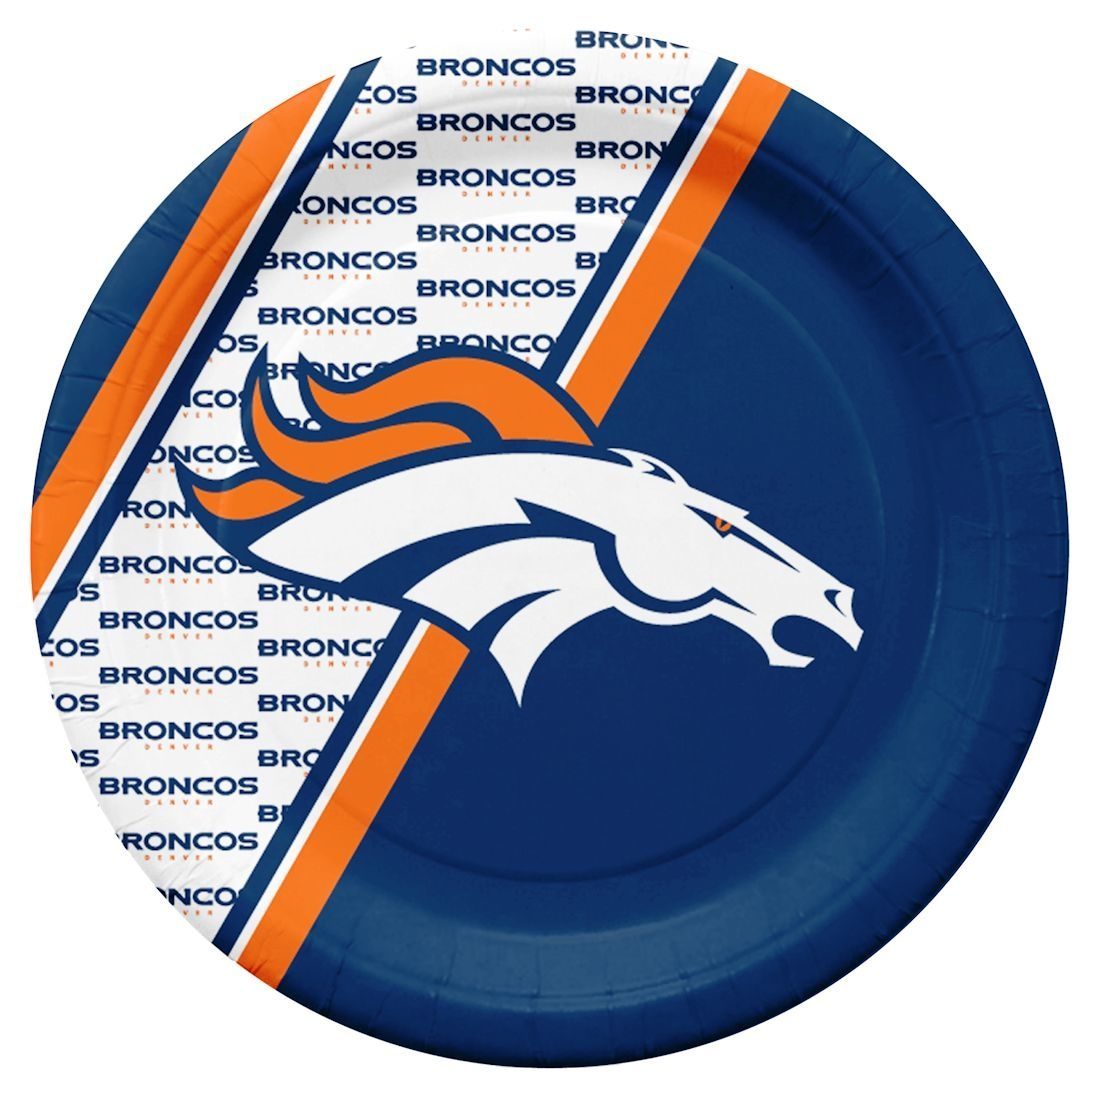 Football Nfl Football Denver Broncos License Plates Frames - 9413106076 - Denver Broncos Disposable Paper Plates 9413106076